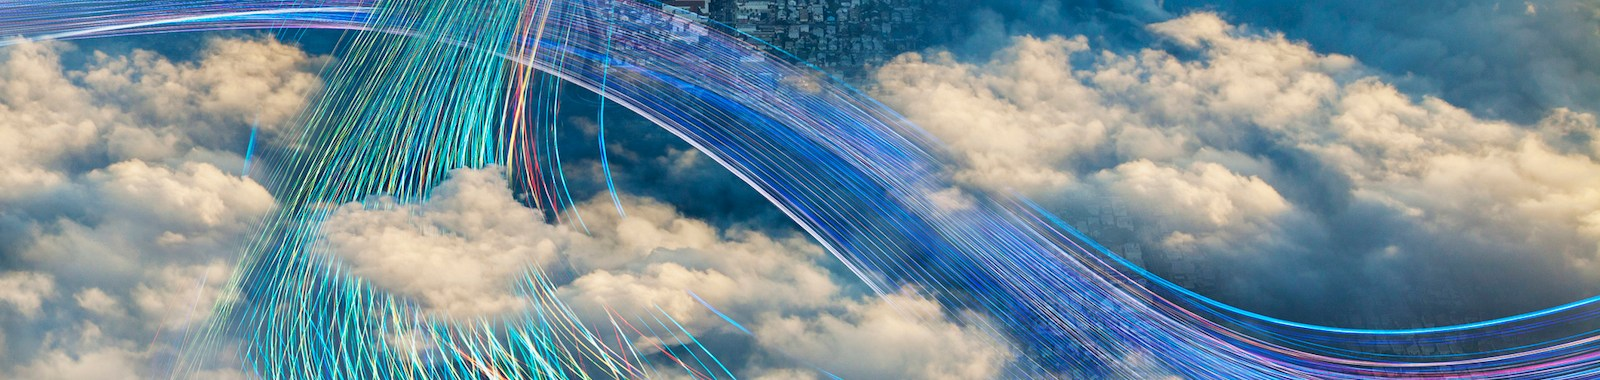 Fiber optic cables crossing in cloudy sky over city